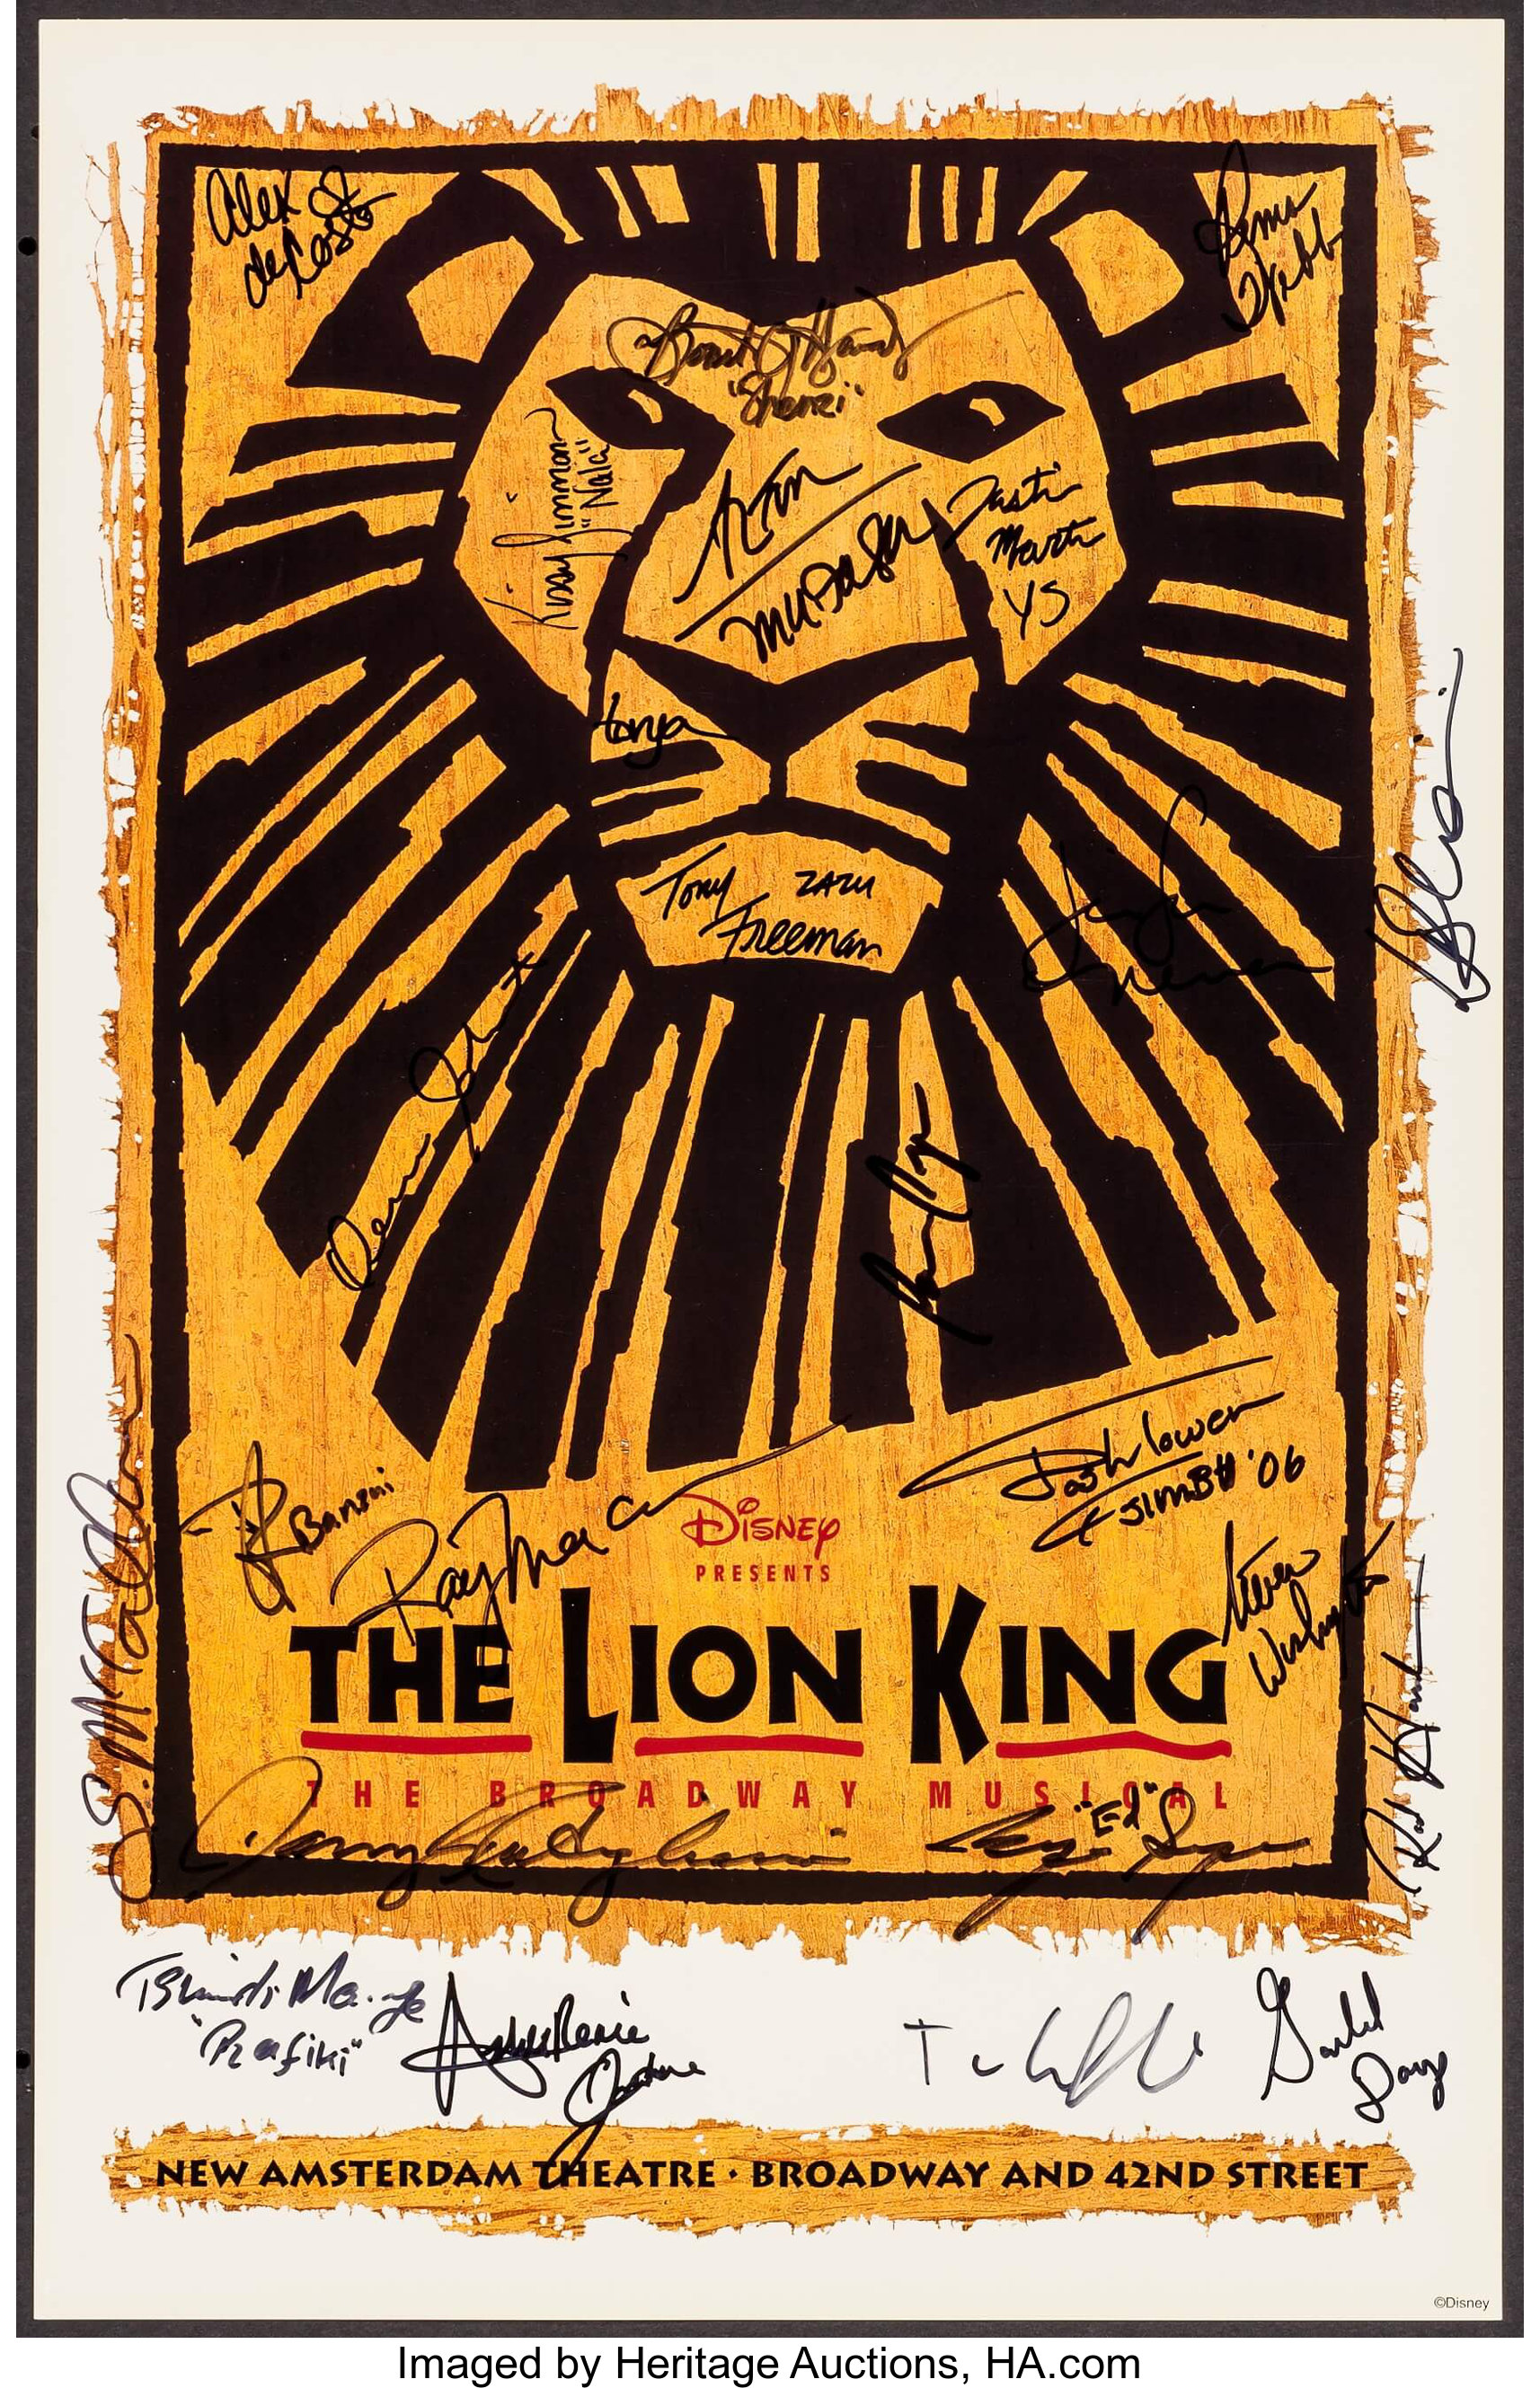 The Lion King On Broadway Disney Theatrical Productions 2006 Lot 54265 Heritage Auctions